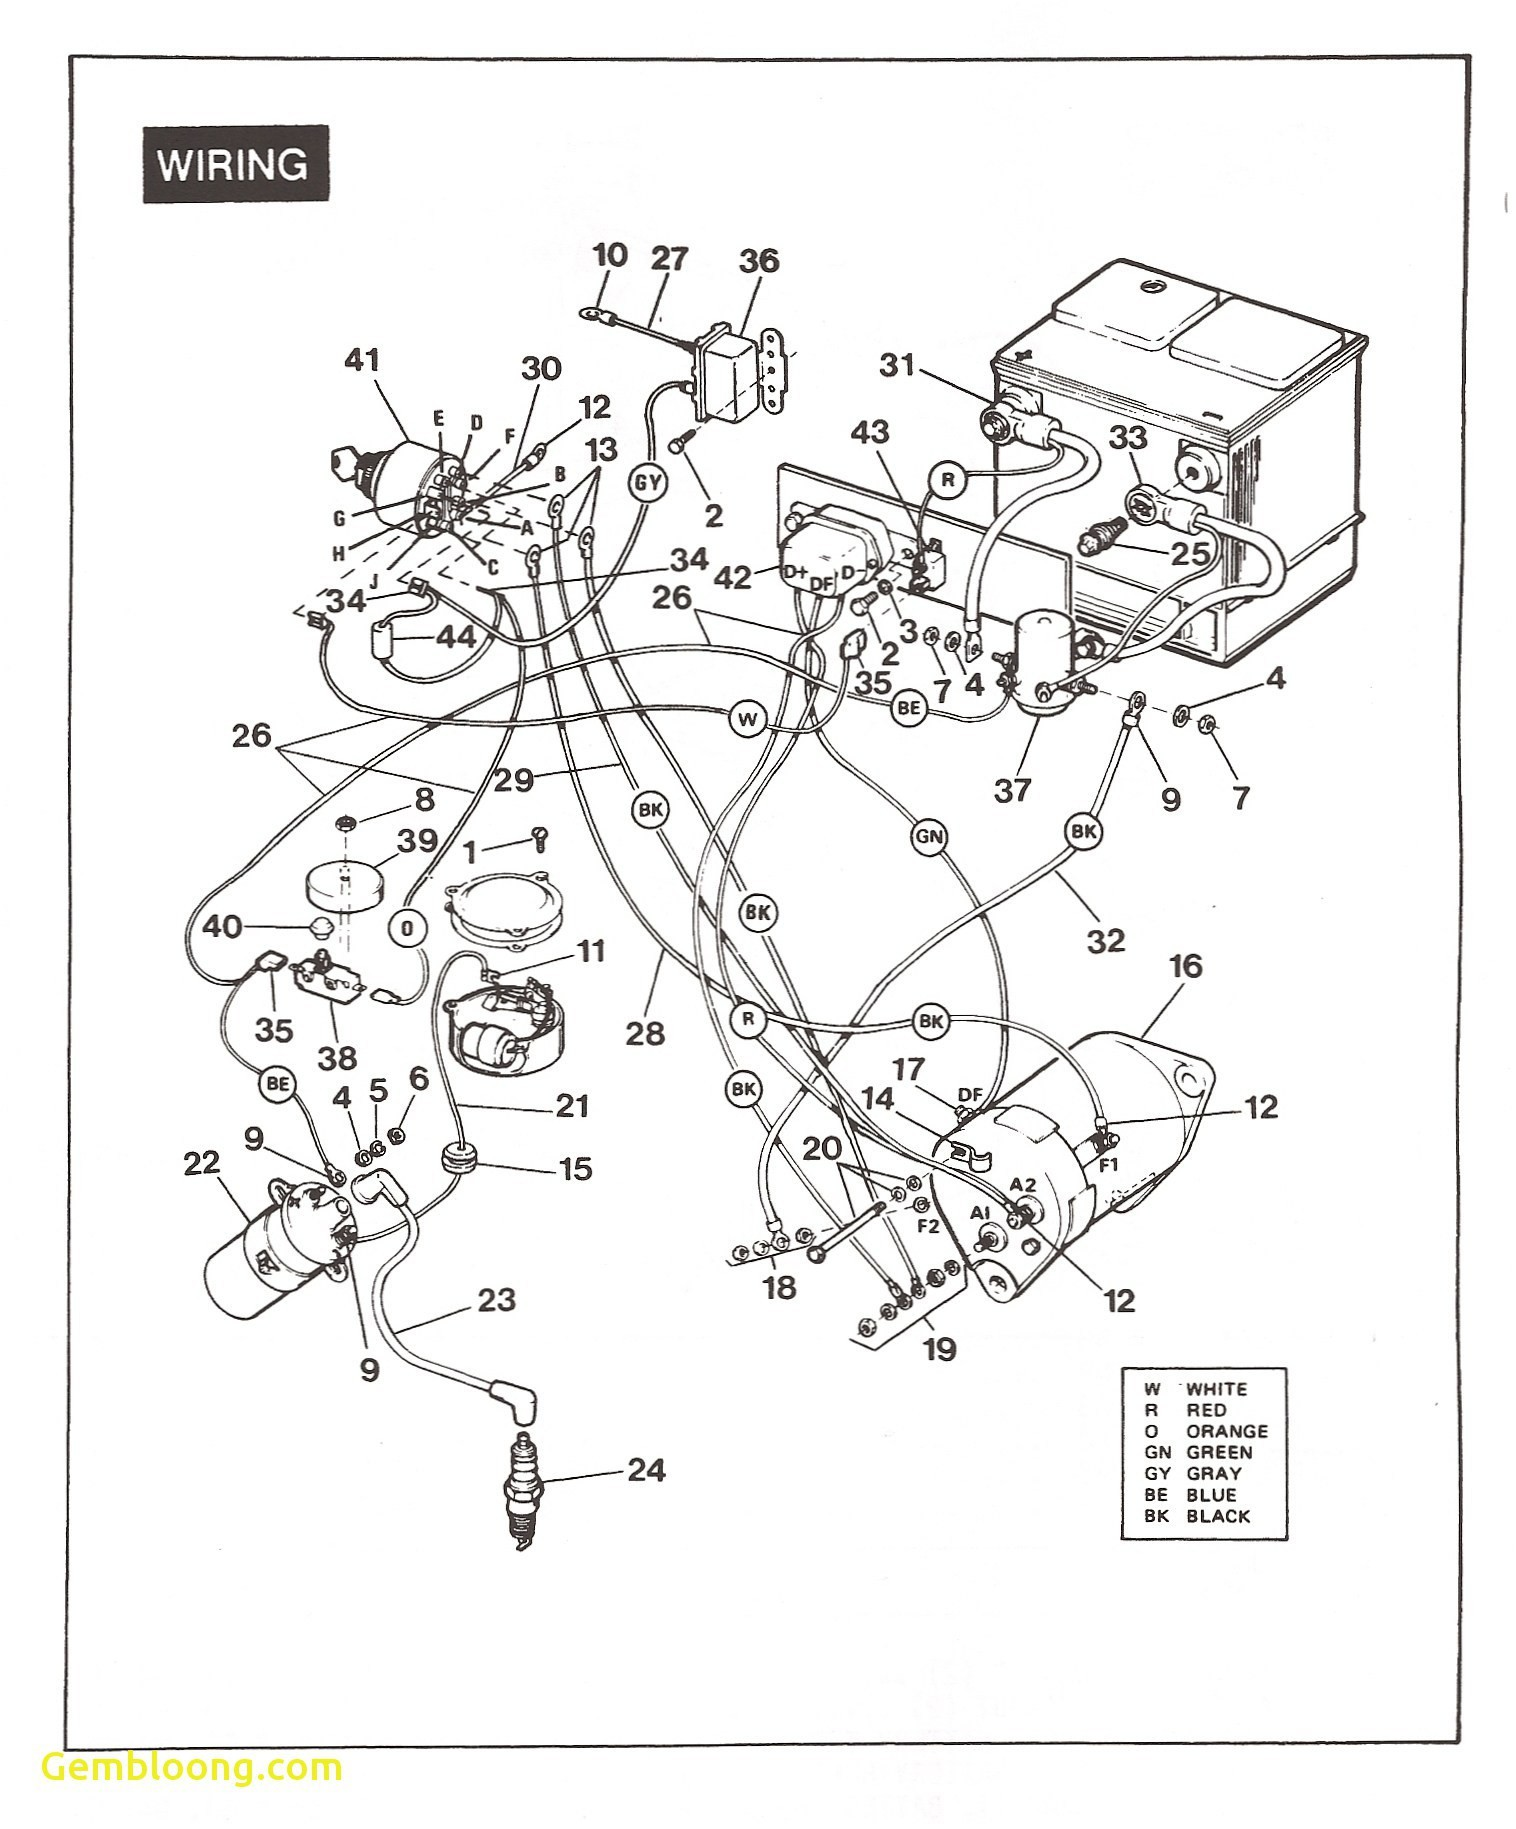 hight resolution of 2002 clubcar wiring diagram 1993 club car wiring diagram columbia par car 48v wiring diagram